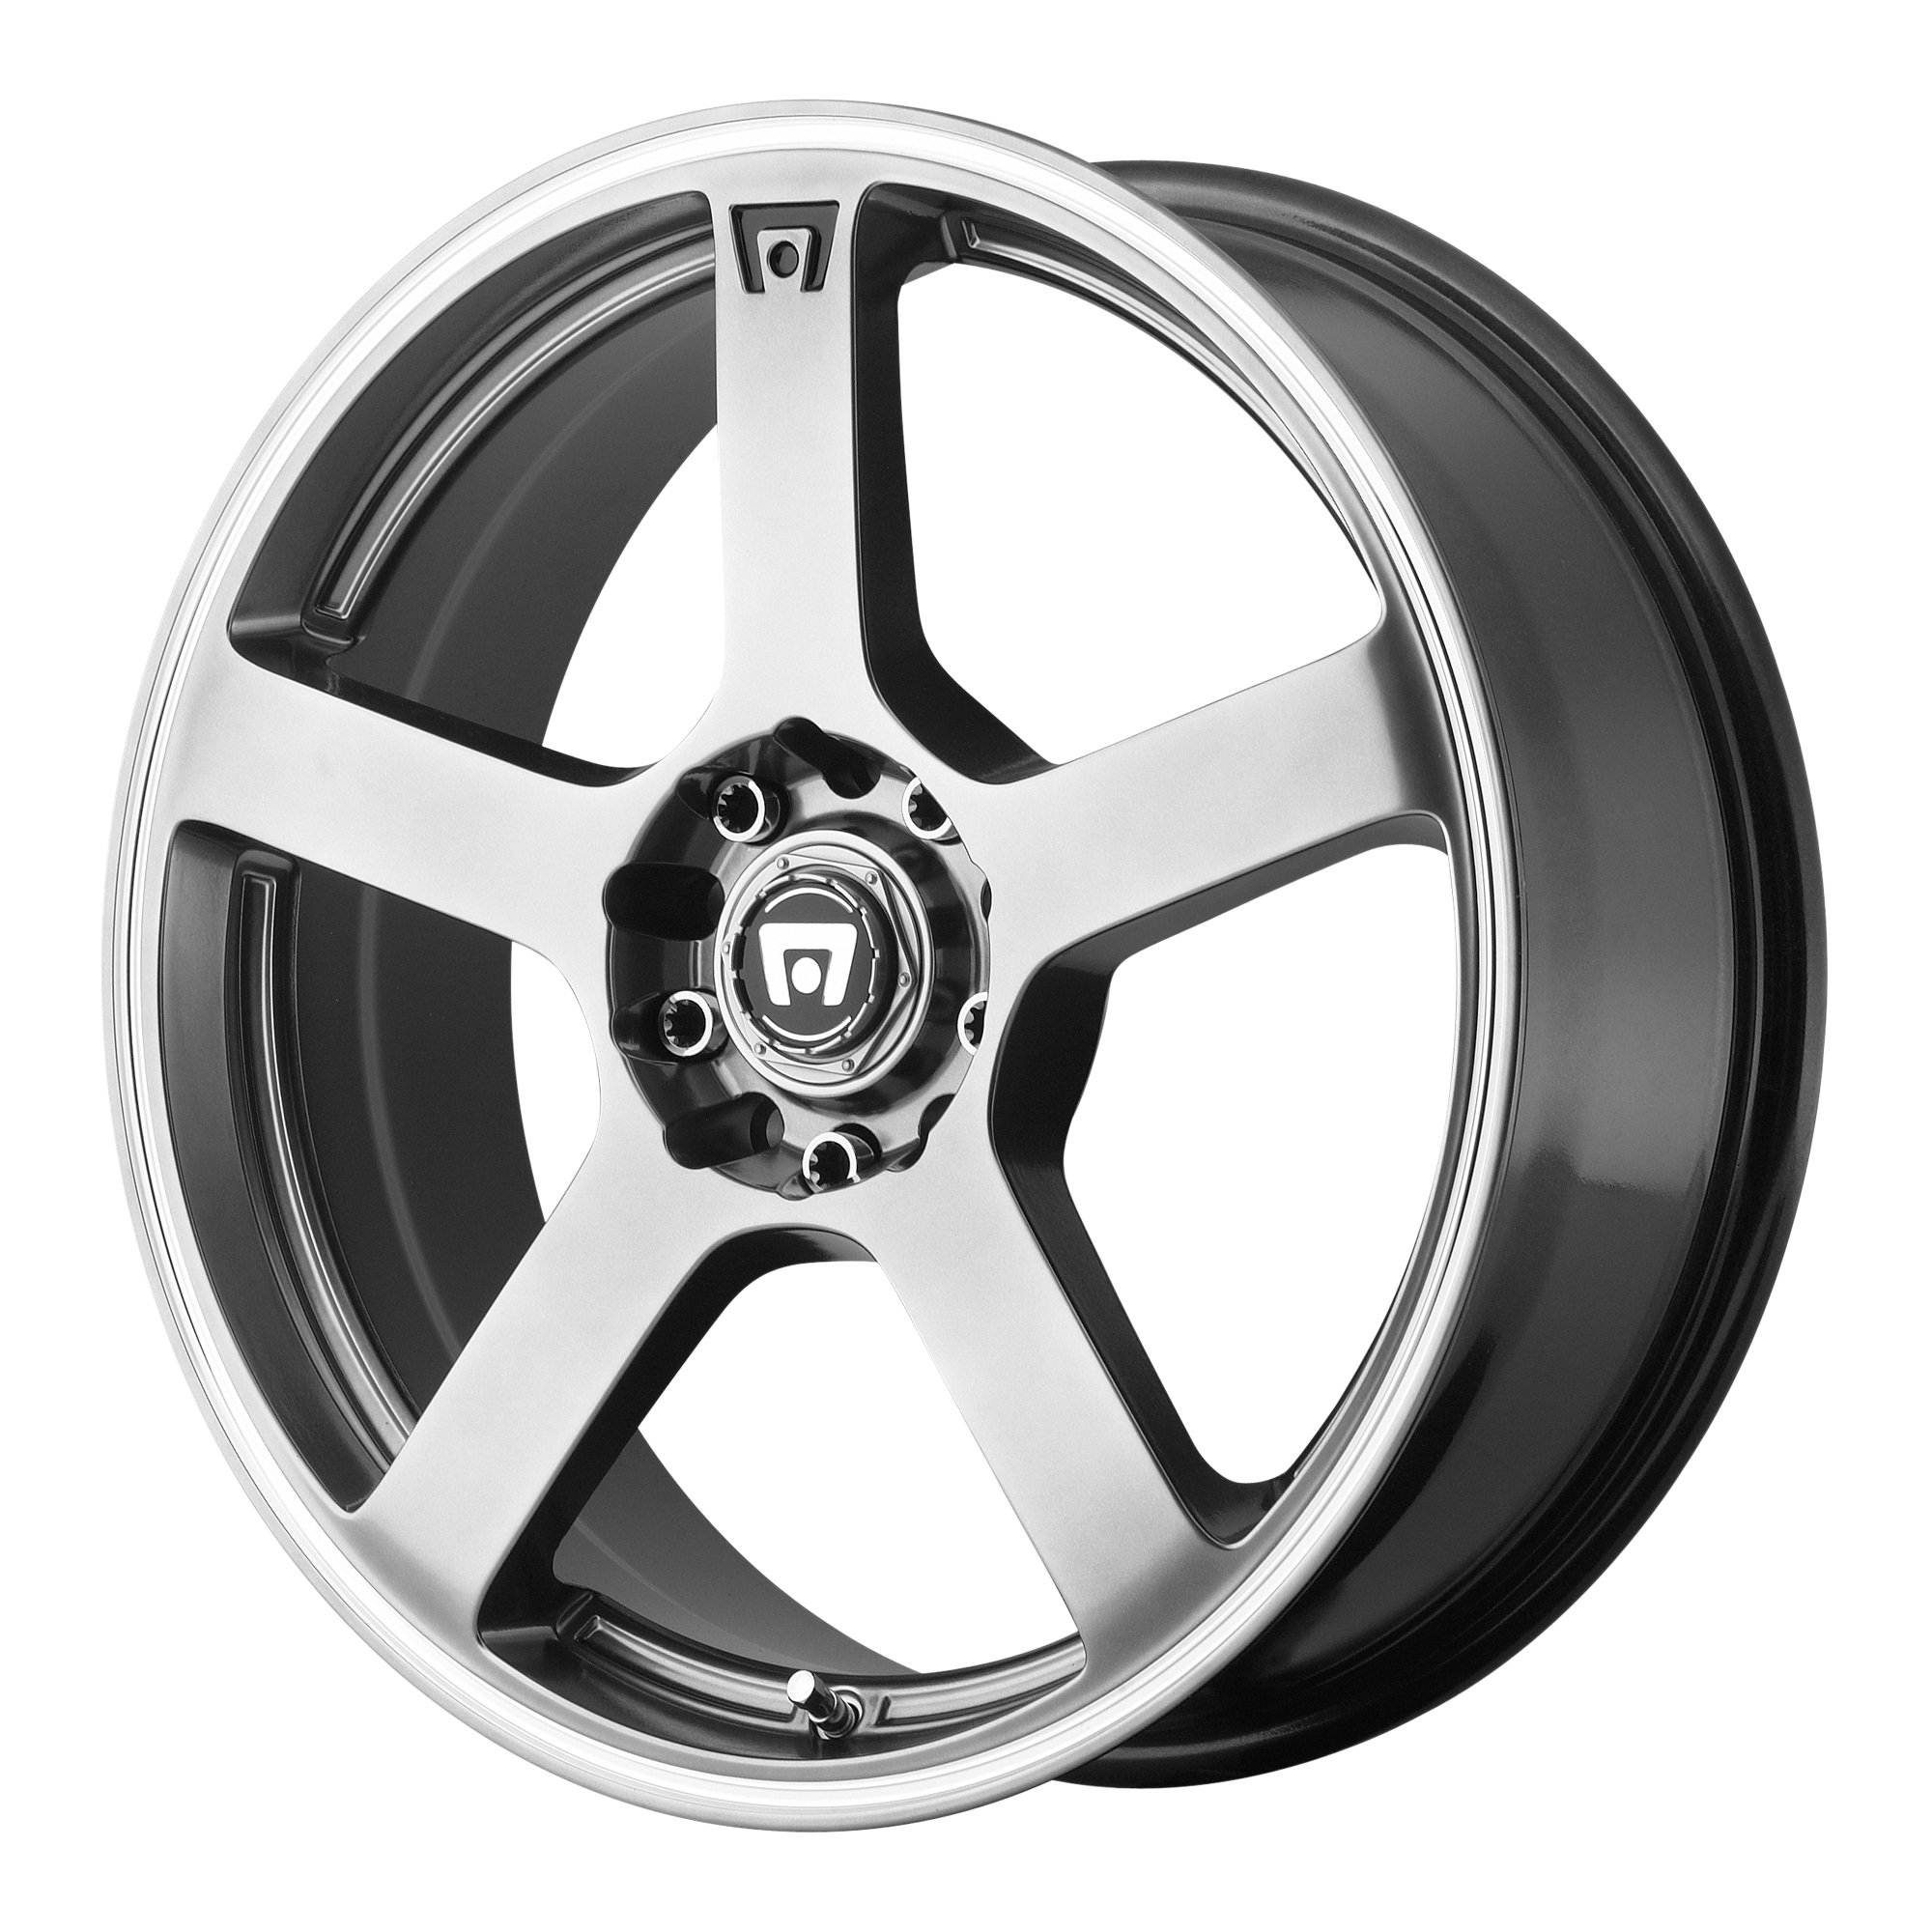 Motegi Racing  MR116 Wheel with Silver Finish (18x8''/4x4.25'')